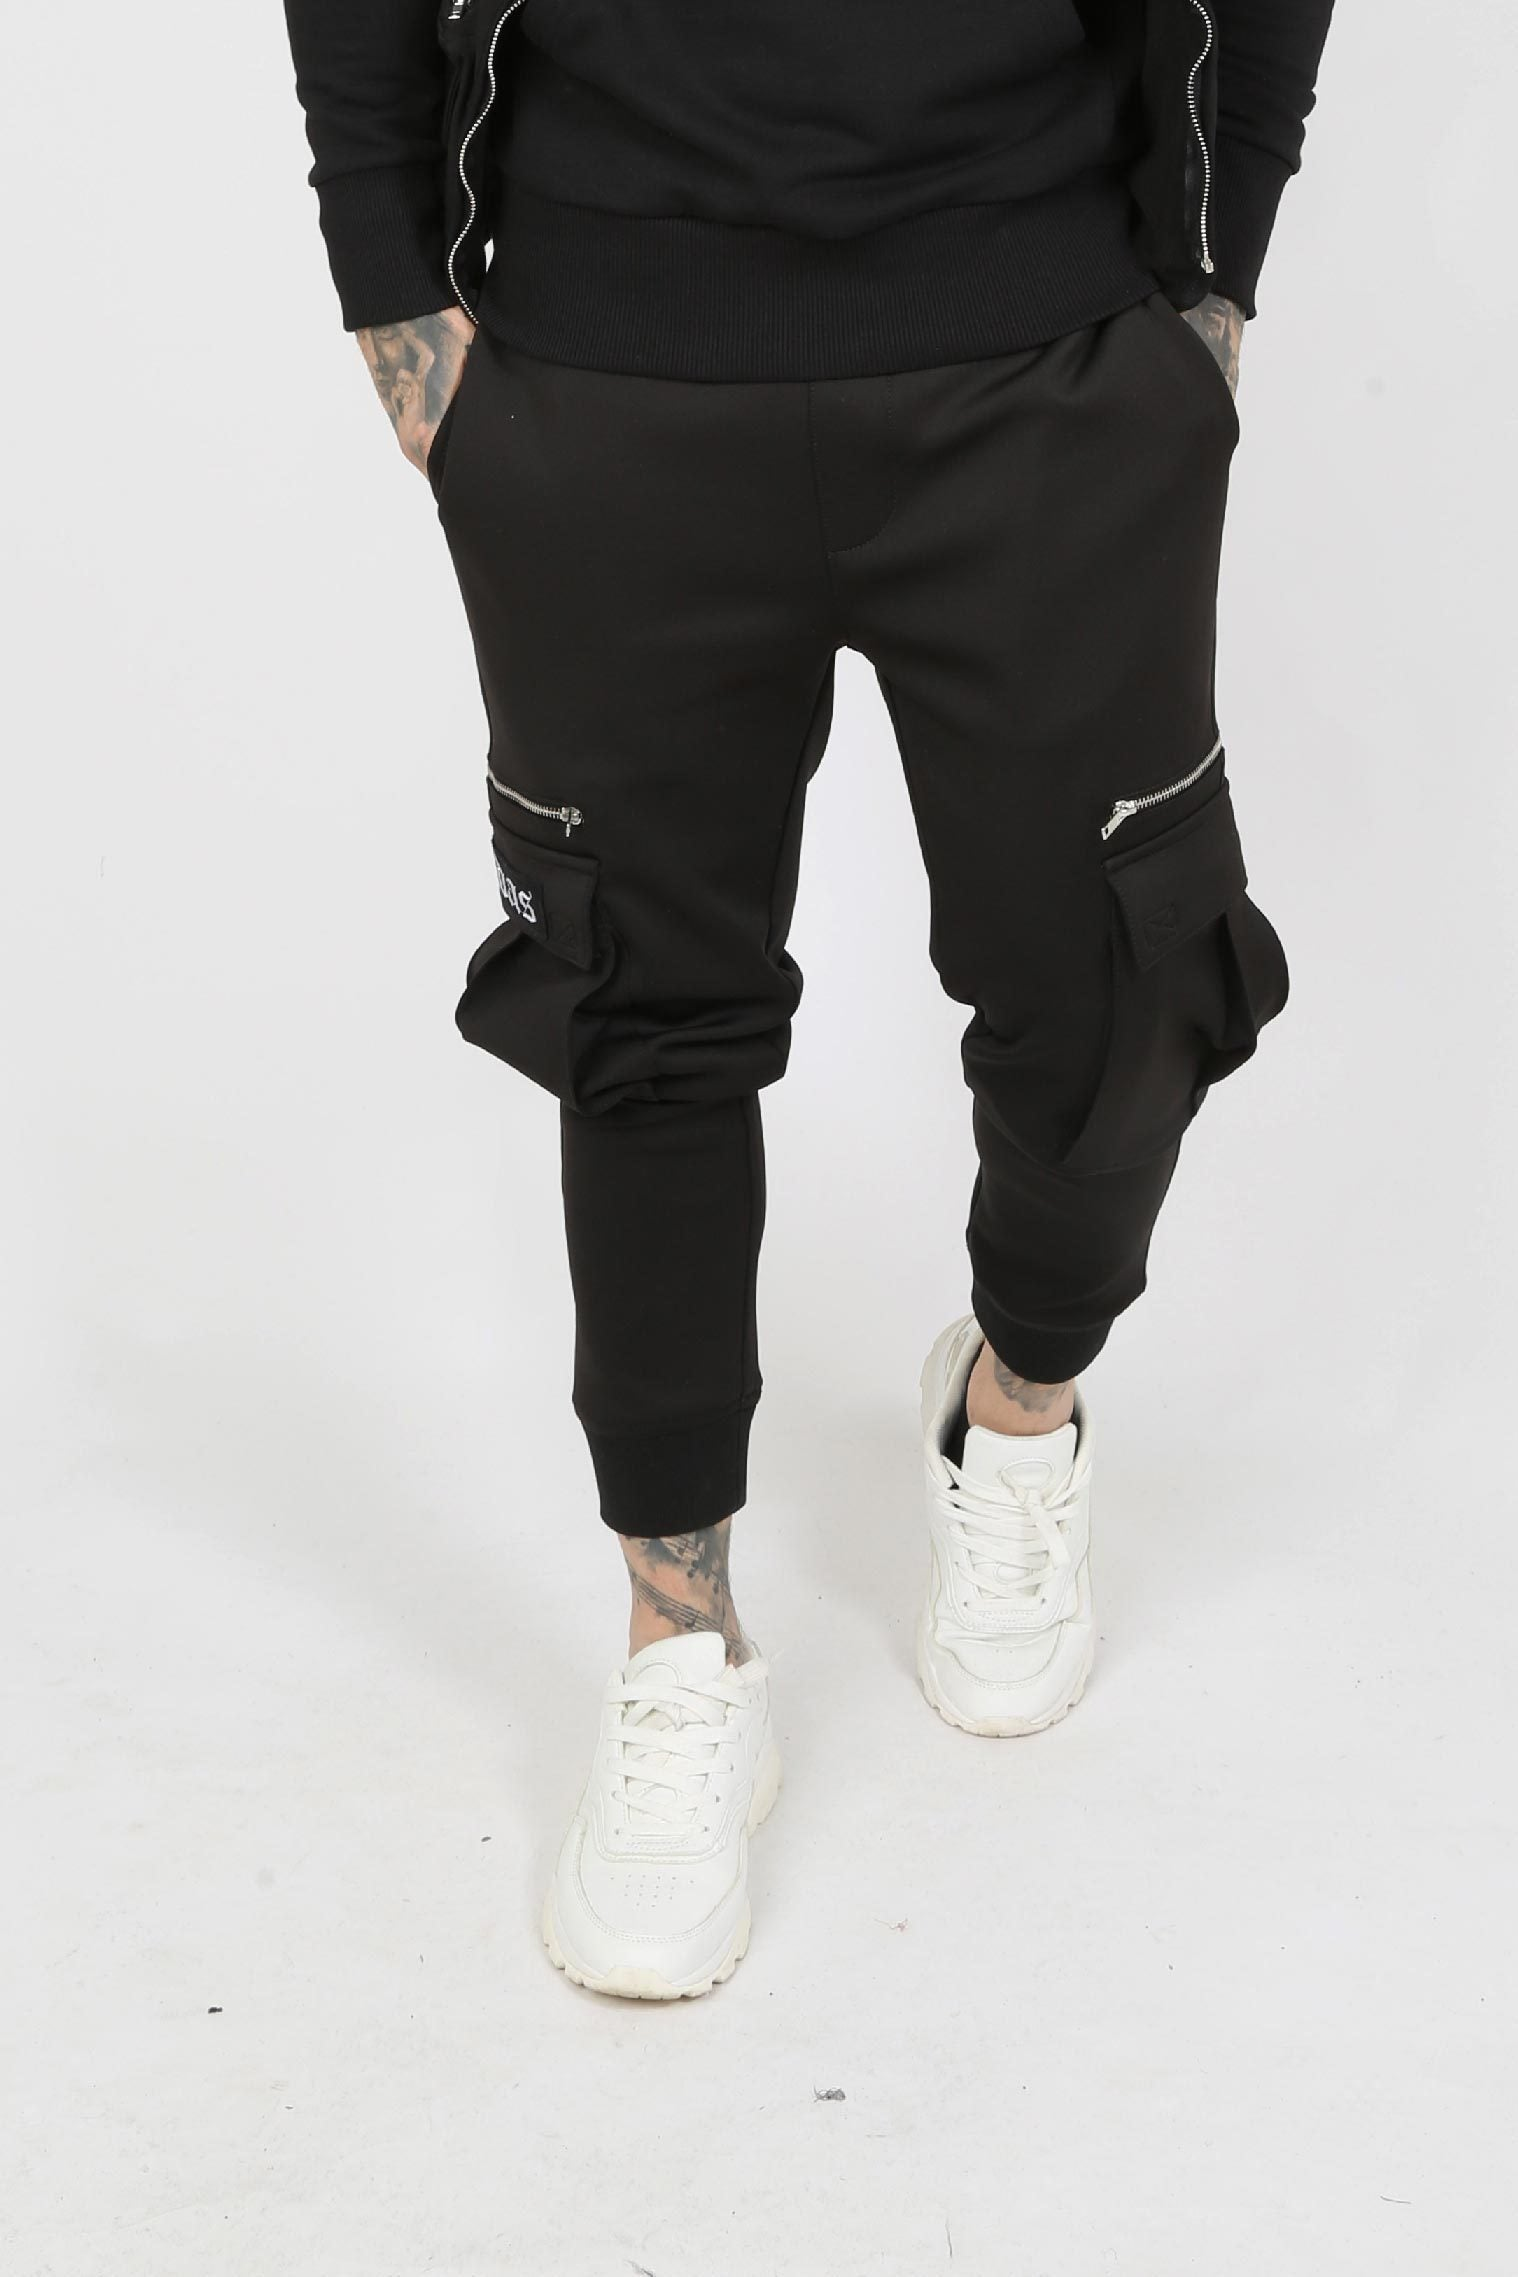 Judas Sinned Urba Cargo Utility Men's Joggers - Black - Judas Sinned Clothing